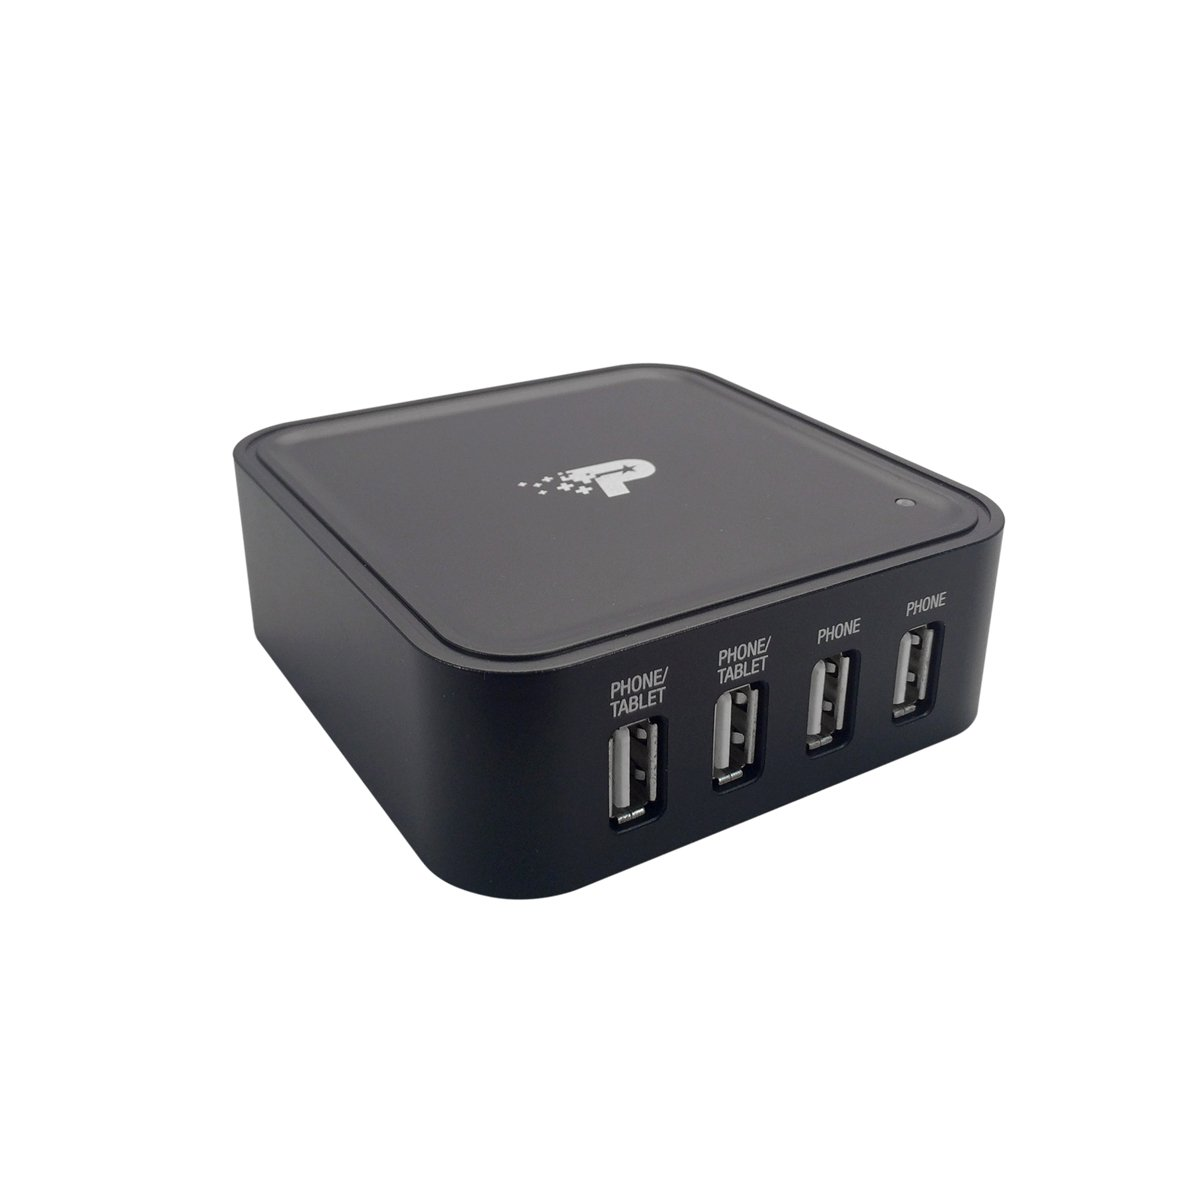 Patriot FUEL Station Mini High-Speed 4-Port Mobile Device Charger with Circuit Protection - Retail Packaging - Black пила patriot es 2016 220301510